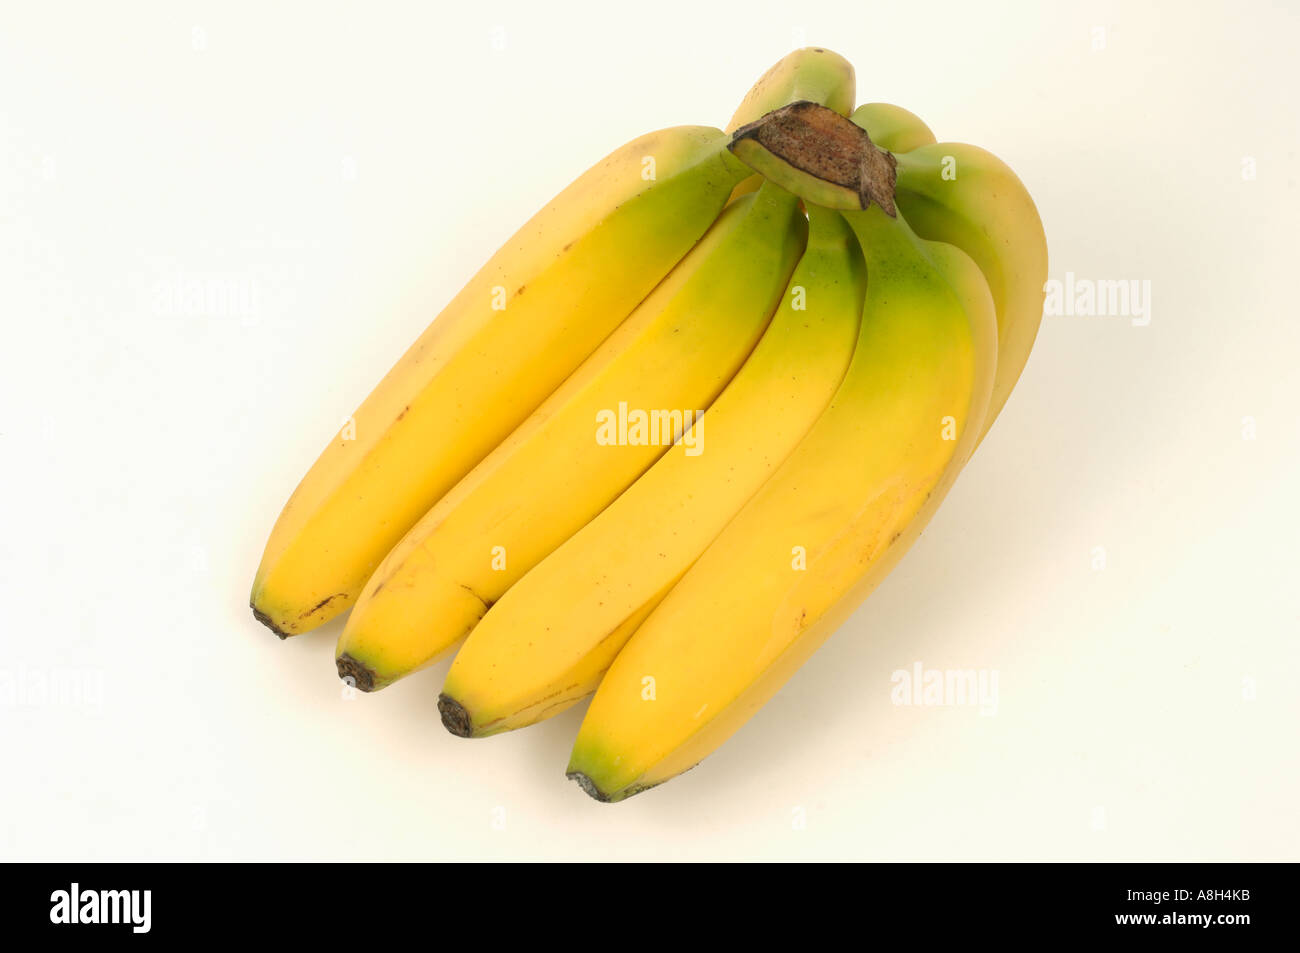 Bunch of bananas supermarket bought and in normal shop condition - Stock Image